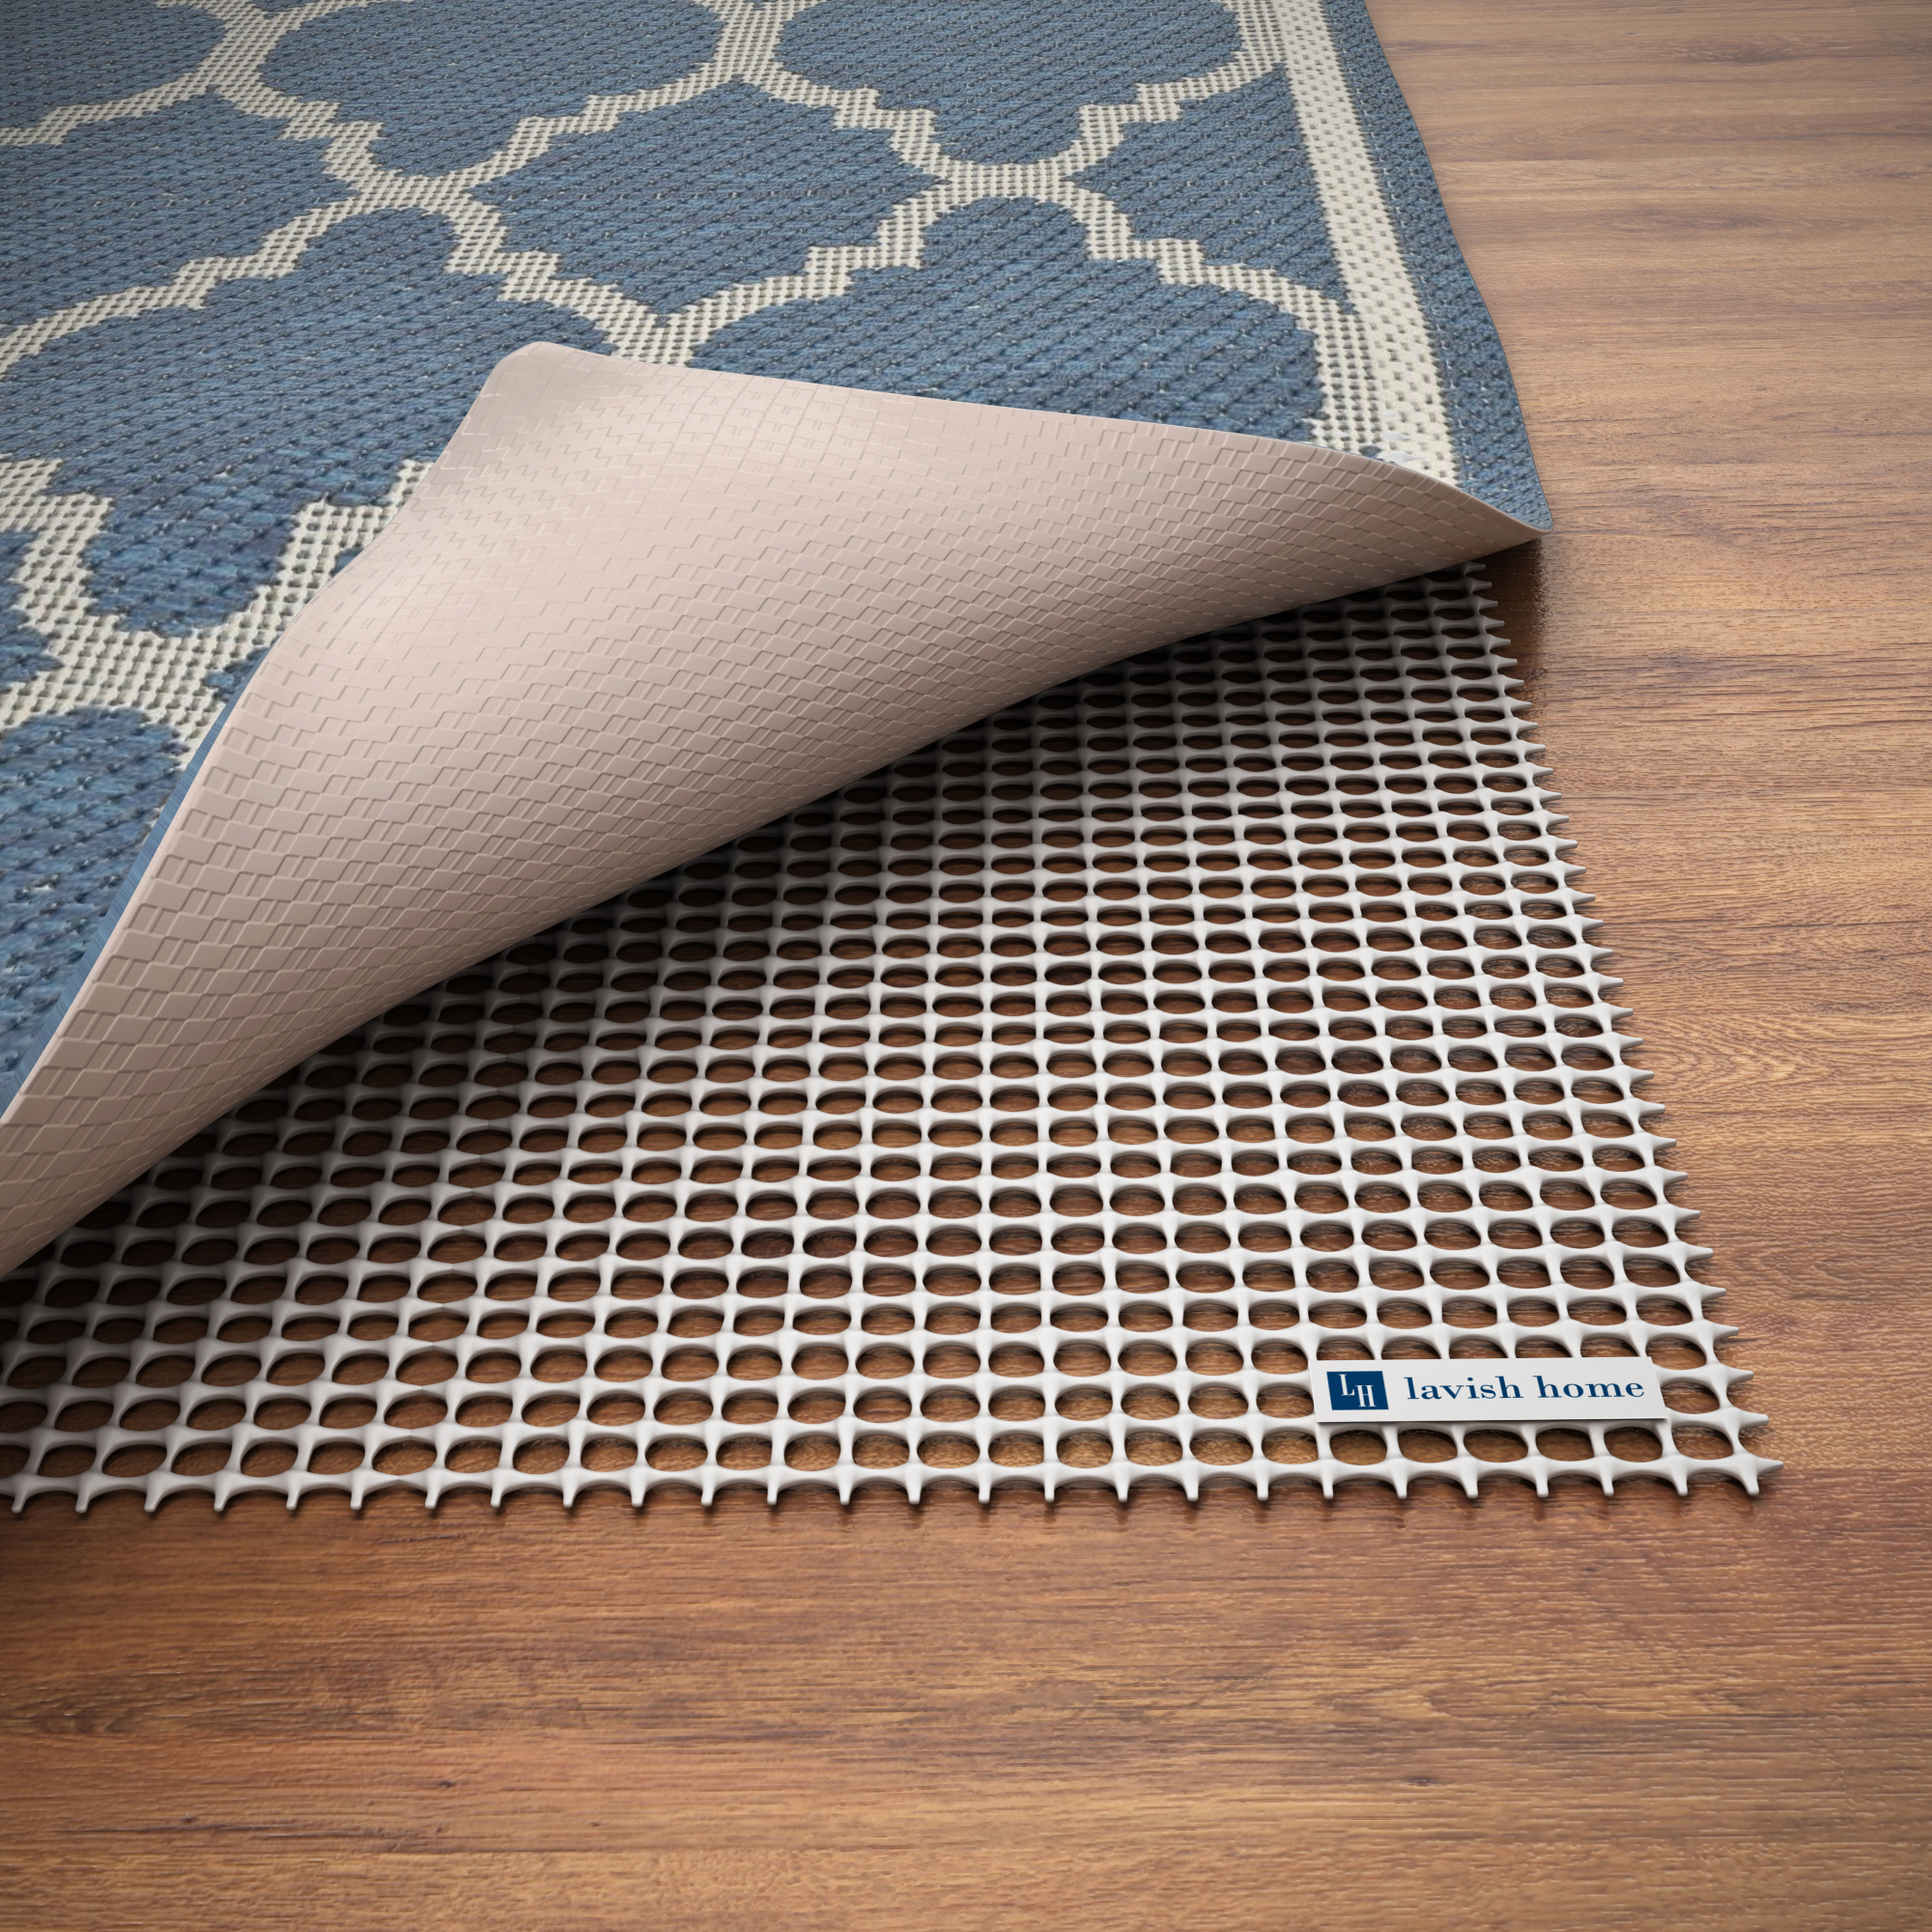 Non Slip Rug Pad- Rubber Non Skid Gripper for Area Rugs on Hard Surfaces and Wood Floors (8' x 10')- Trim to Fit Multiple Rug Sizes